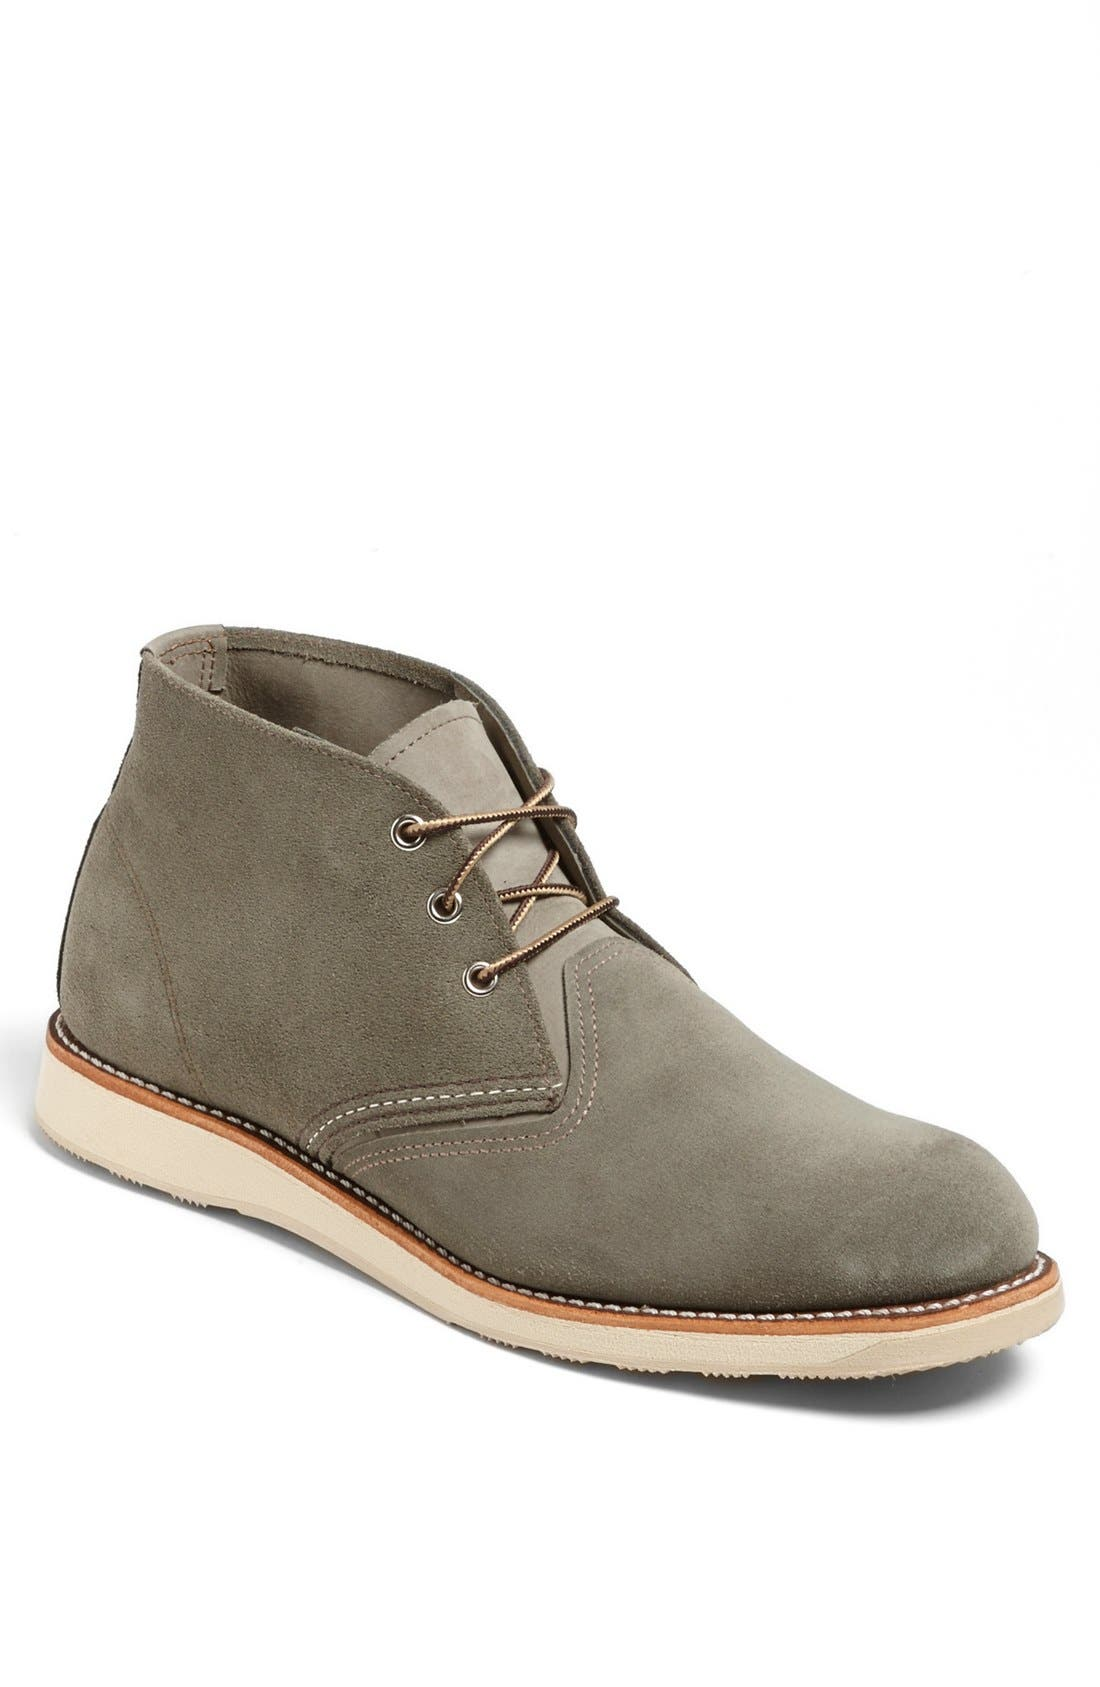 Alternate Image 1 Selected - Red Wing 'Classic' Chukka Boot (Men)